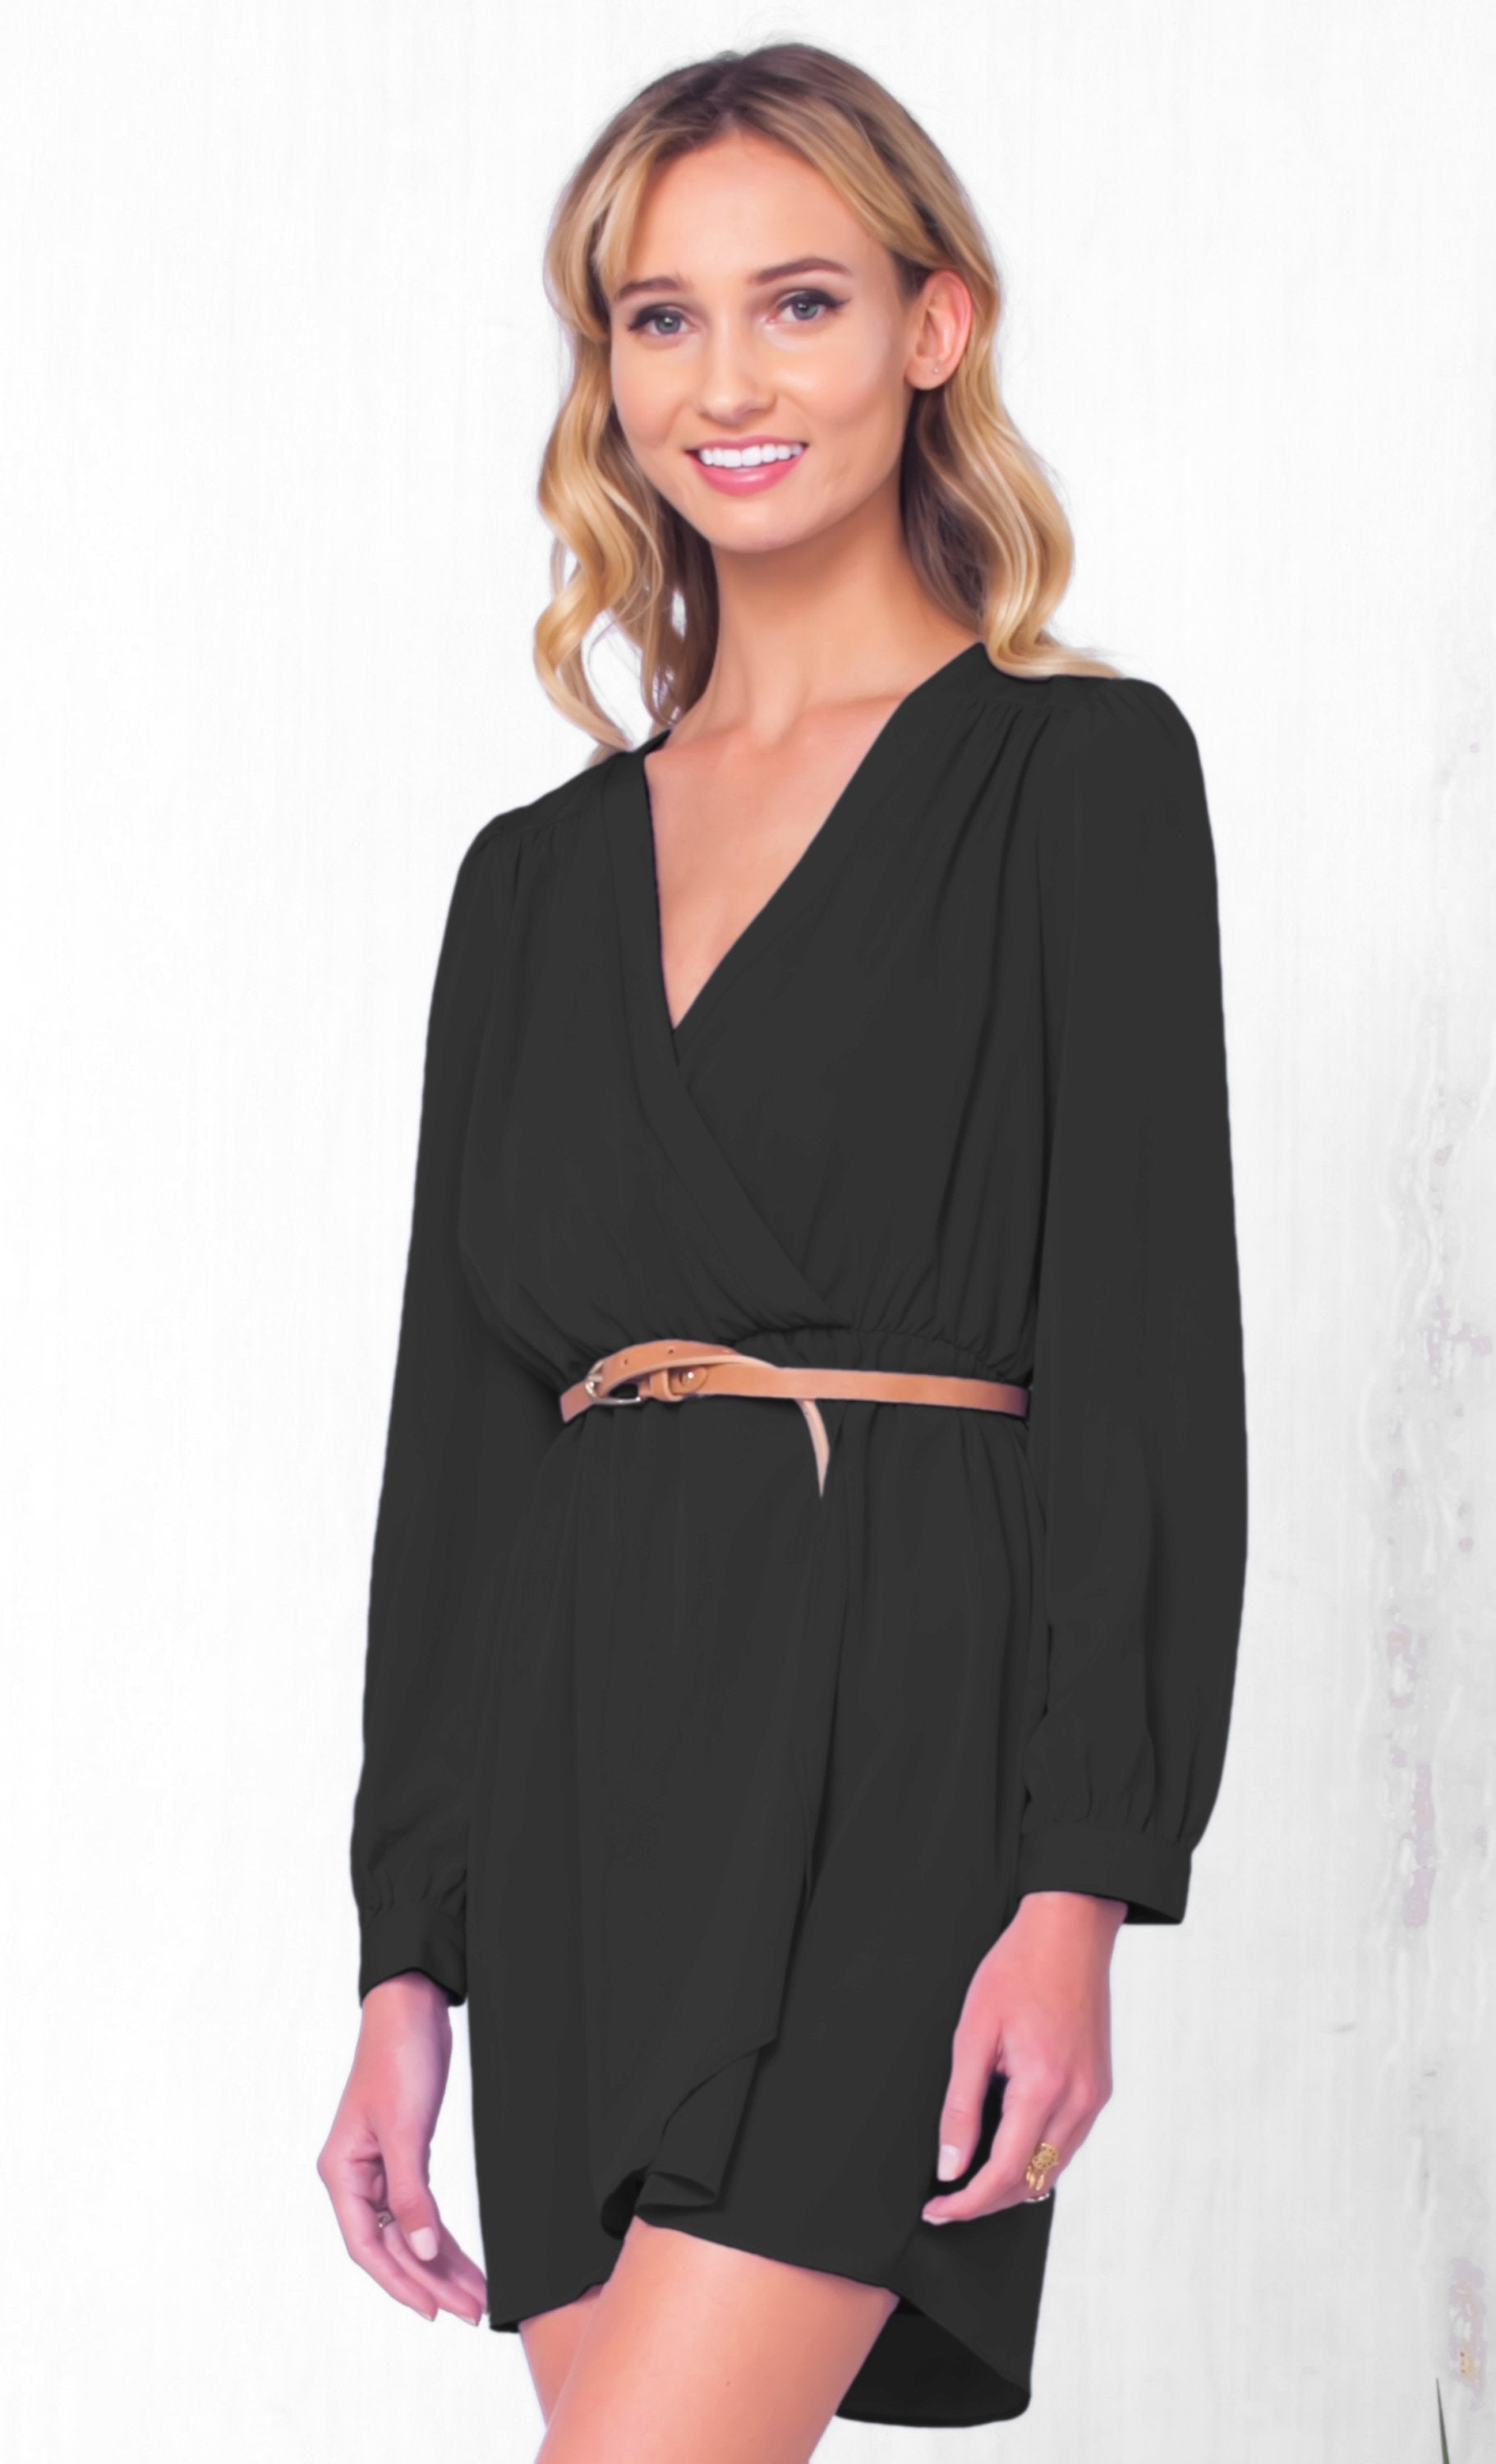 Indie XO That's A Wrap Black Long Sleeve Cross Wrap V Neck Elastic Tulip Chiffon Mini Dress - Just Ours!